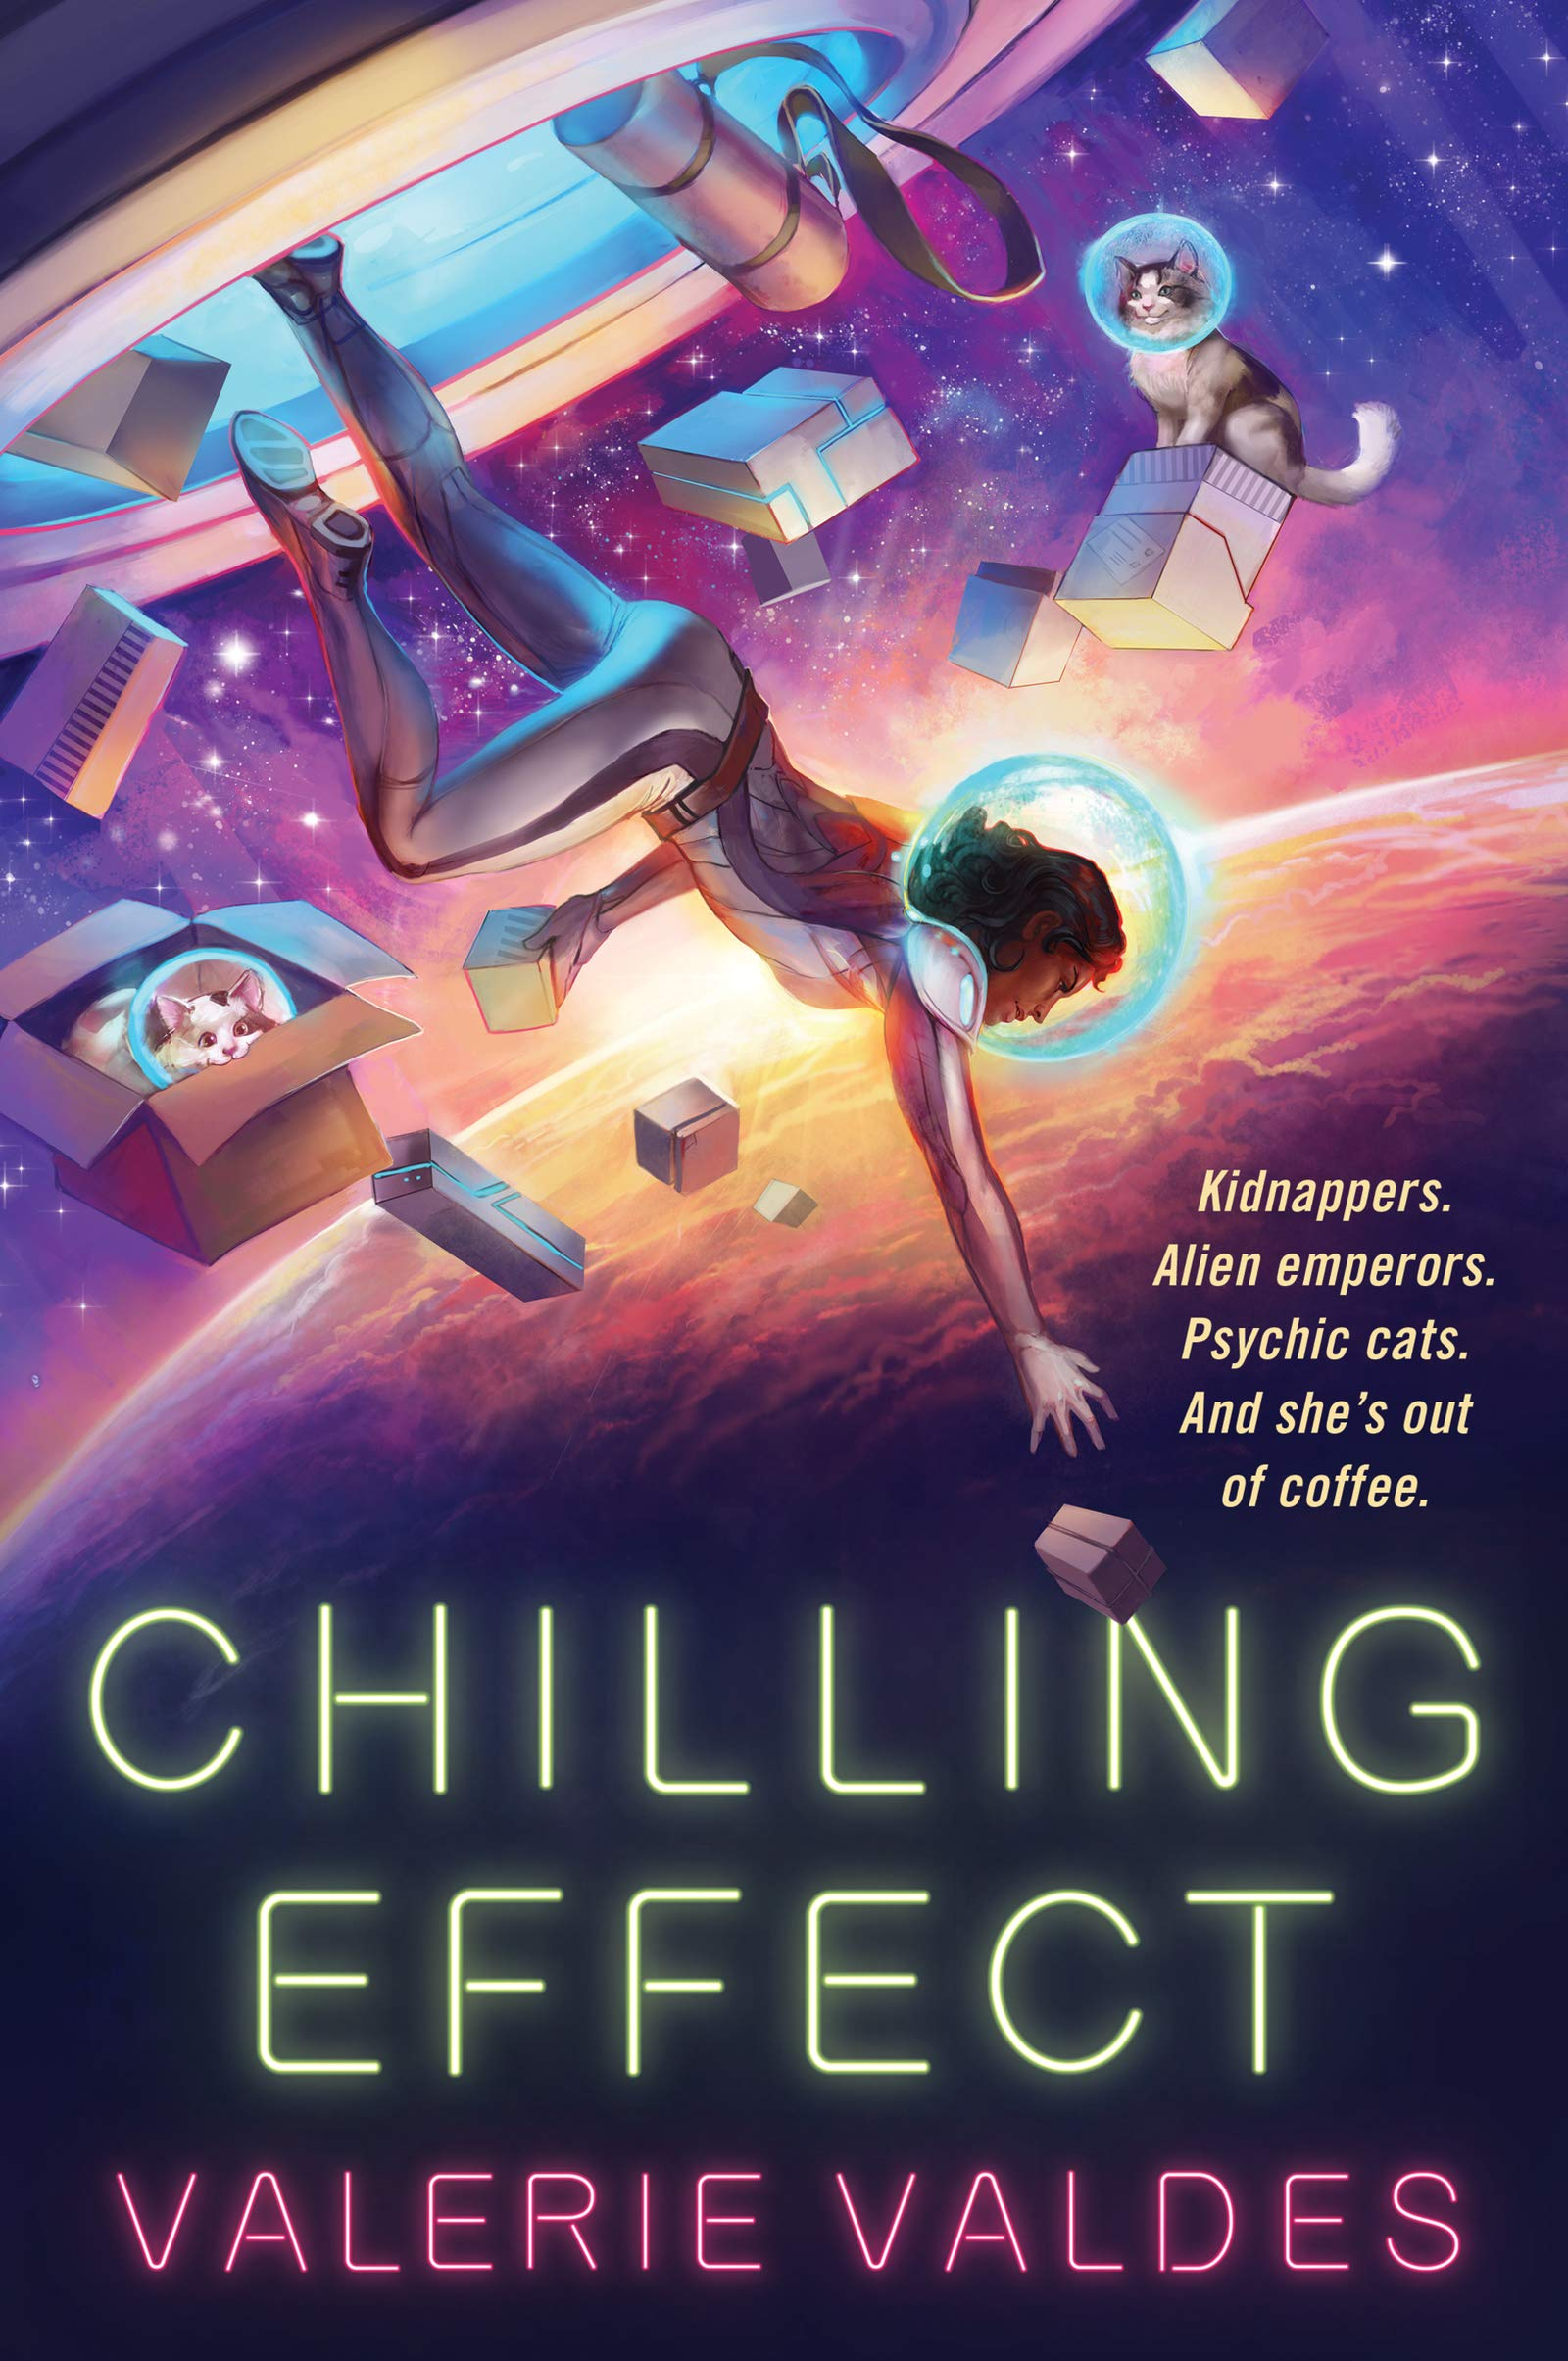 Chilling Effect: Valdes, Valerie: 9780062877239: Amazon.com: Books